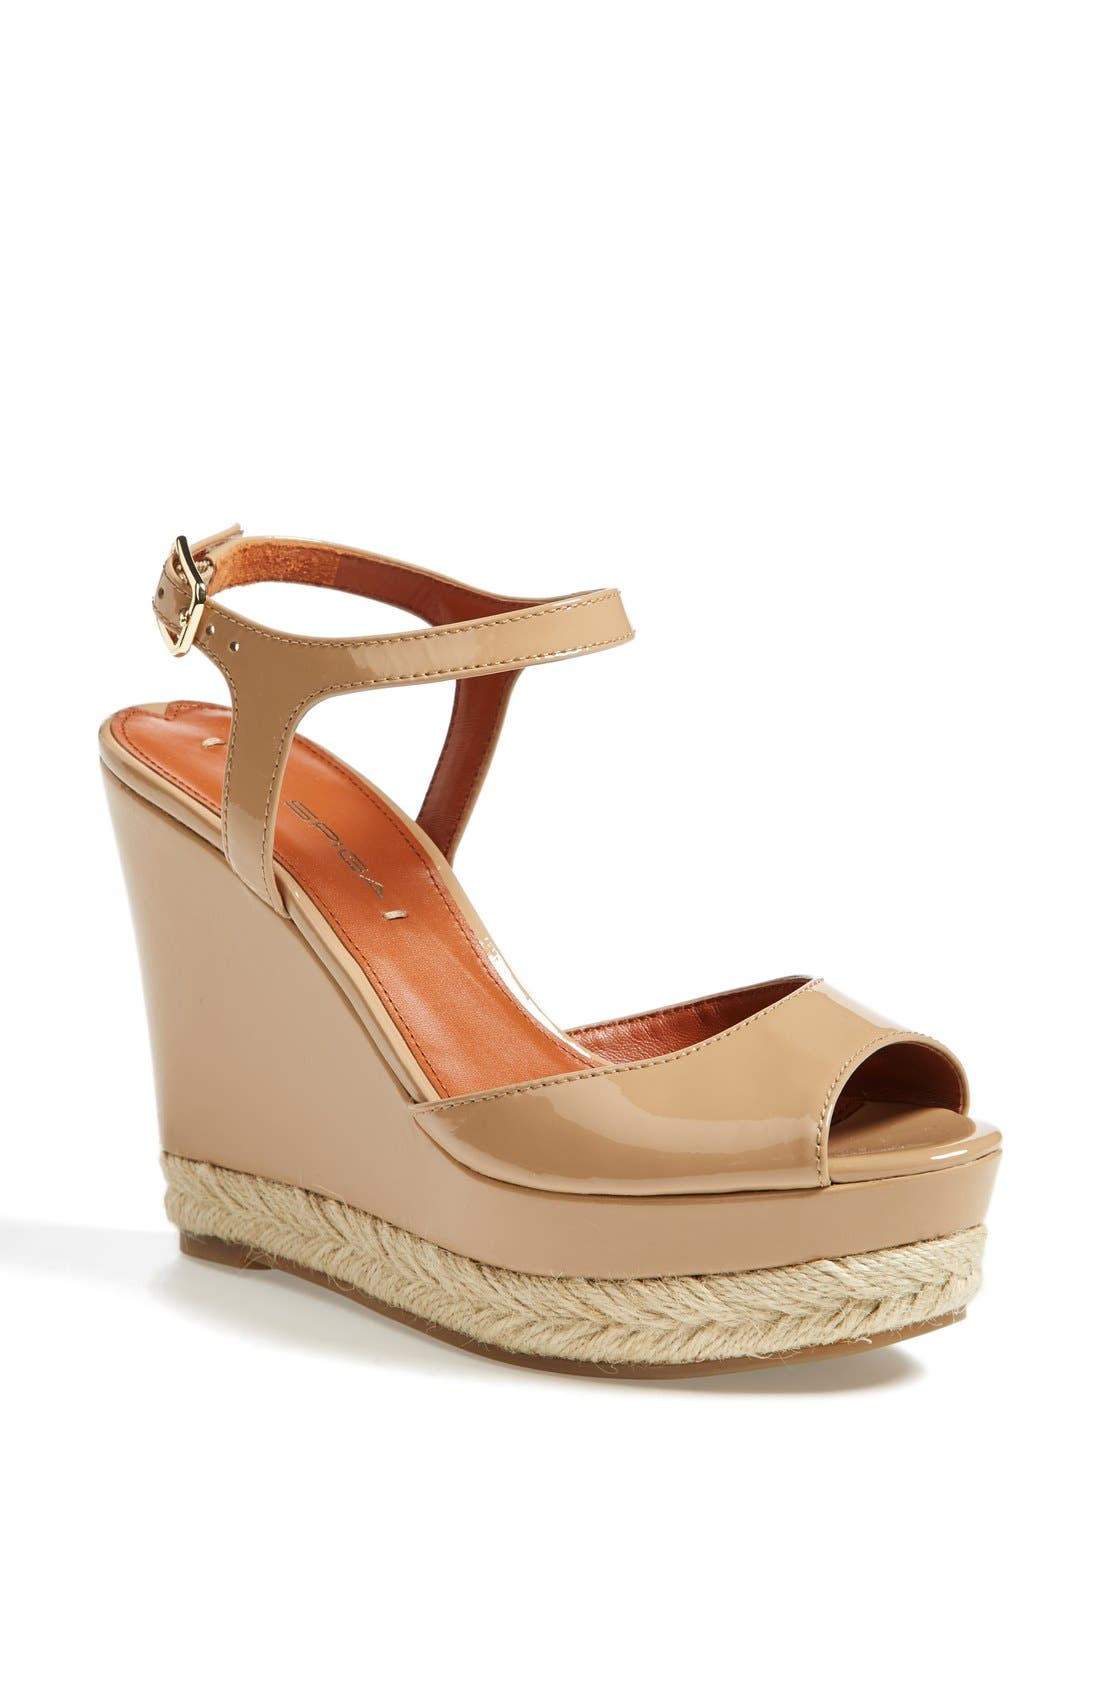 Main Image - Via Spiga 'Melia' Wedge Sandal